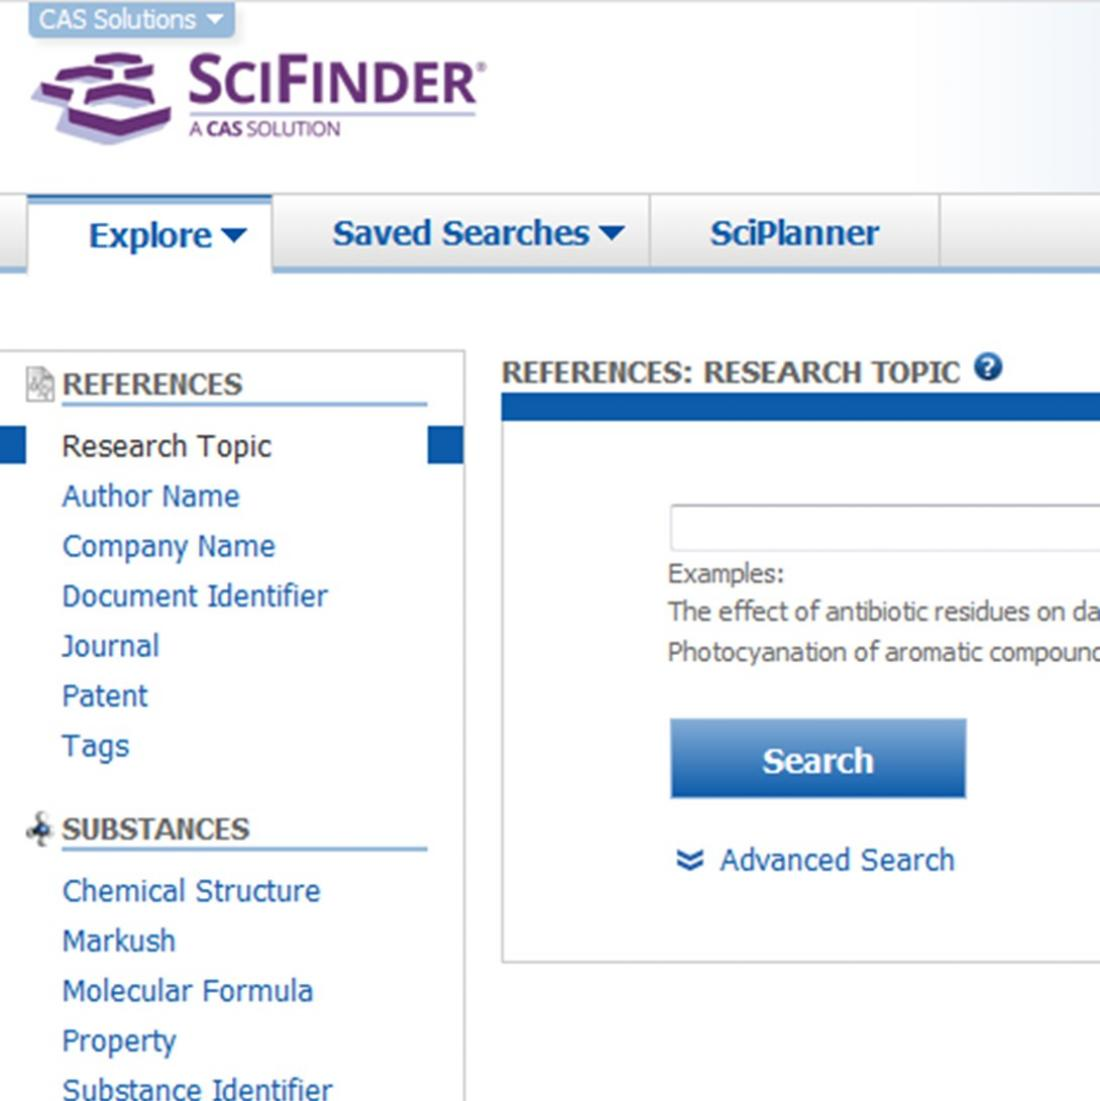 SciFinder structural database